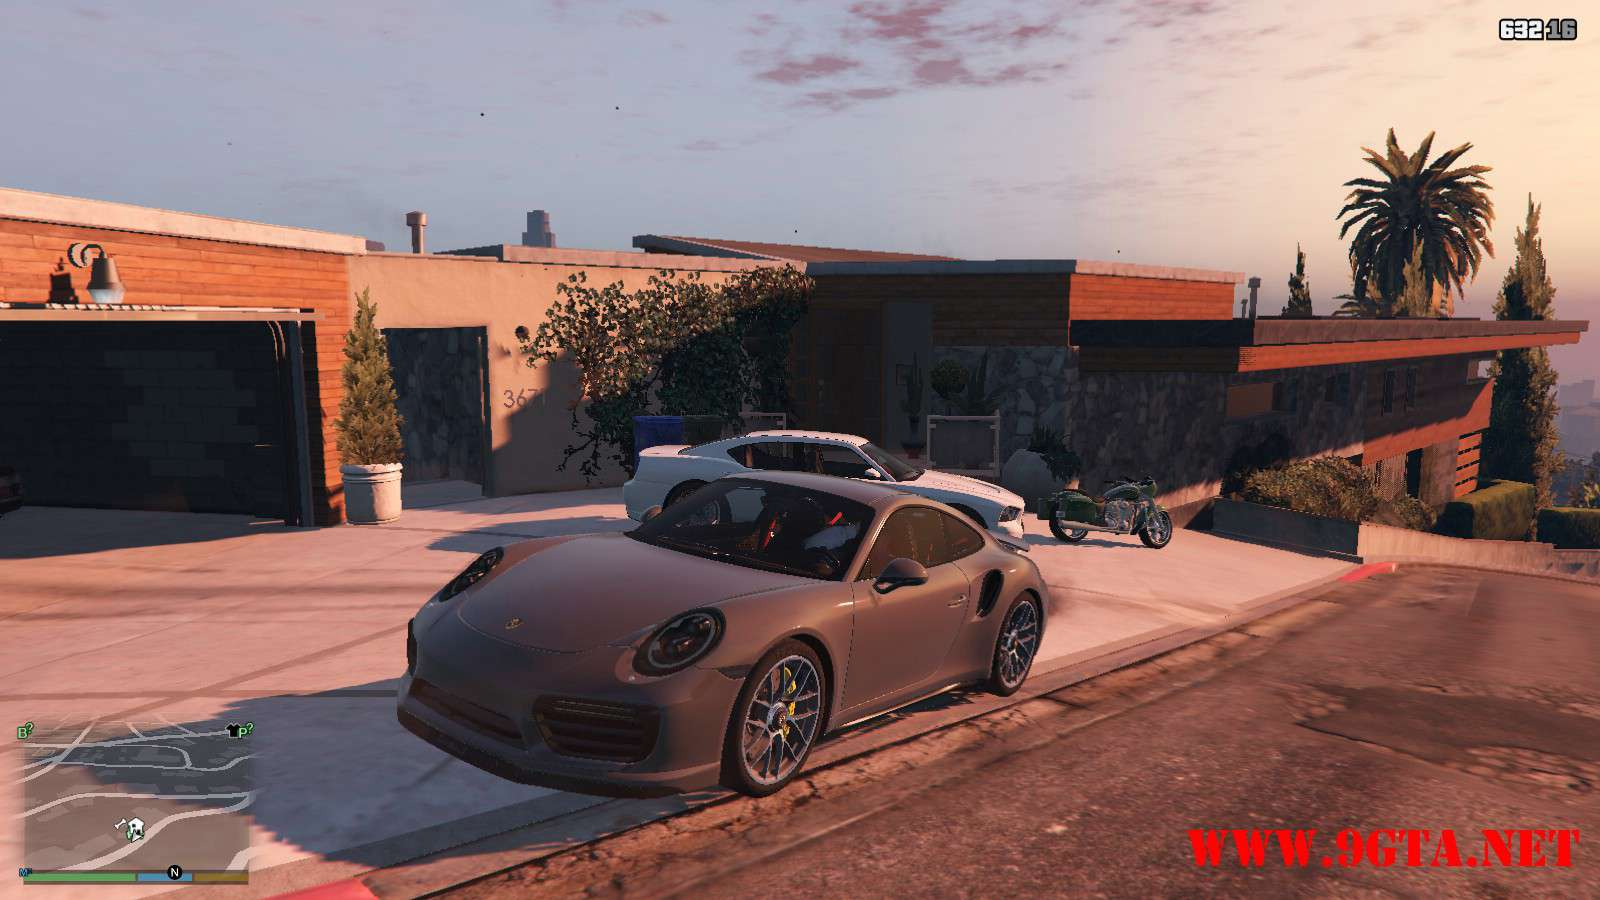 2016 Porsche 911 Turbo S GTA5 Mods (1)